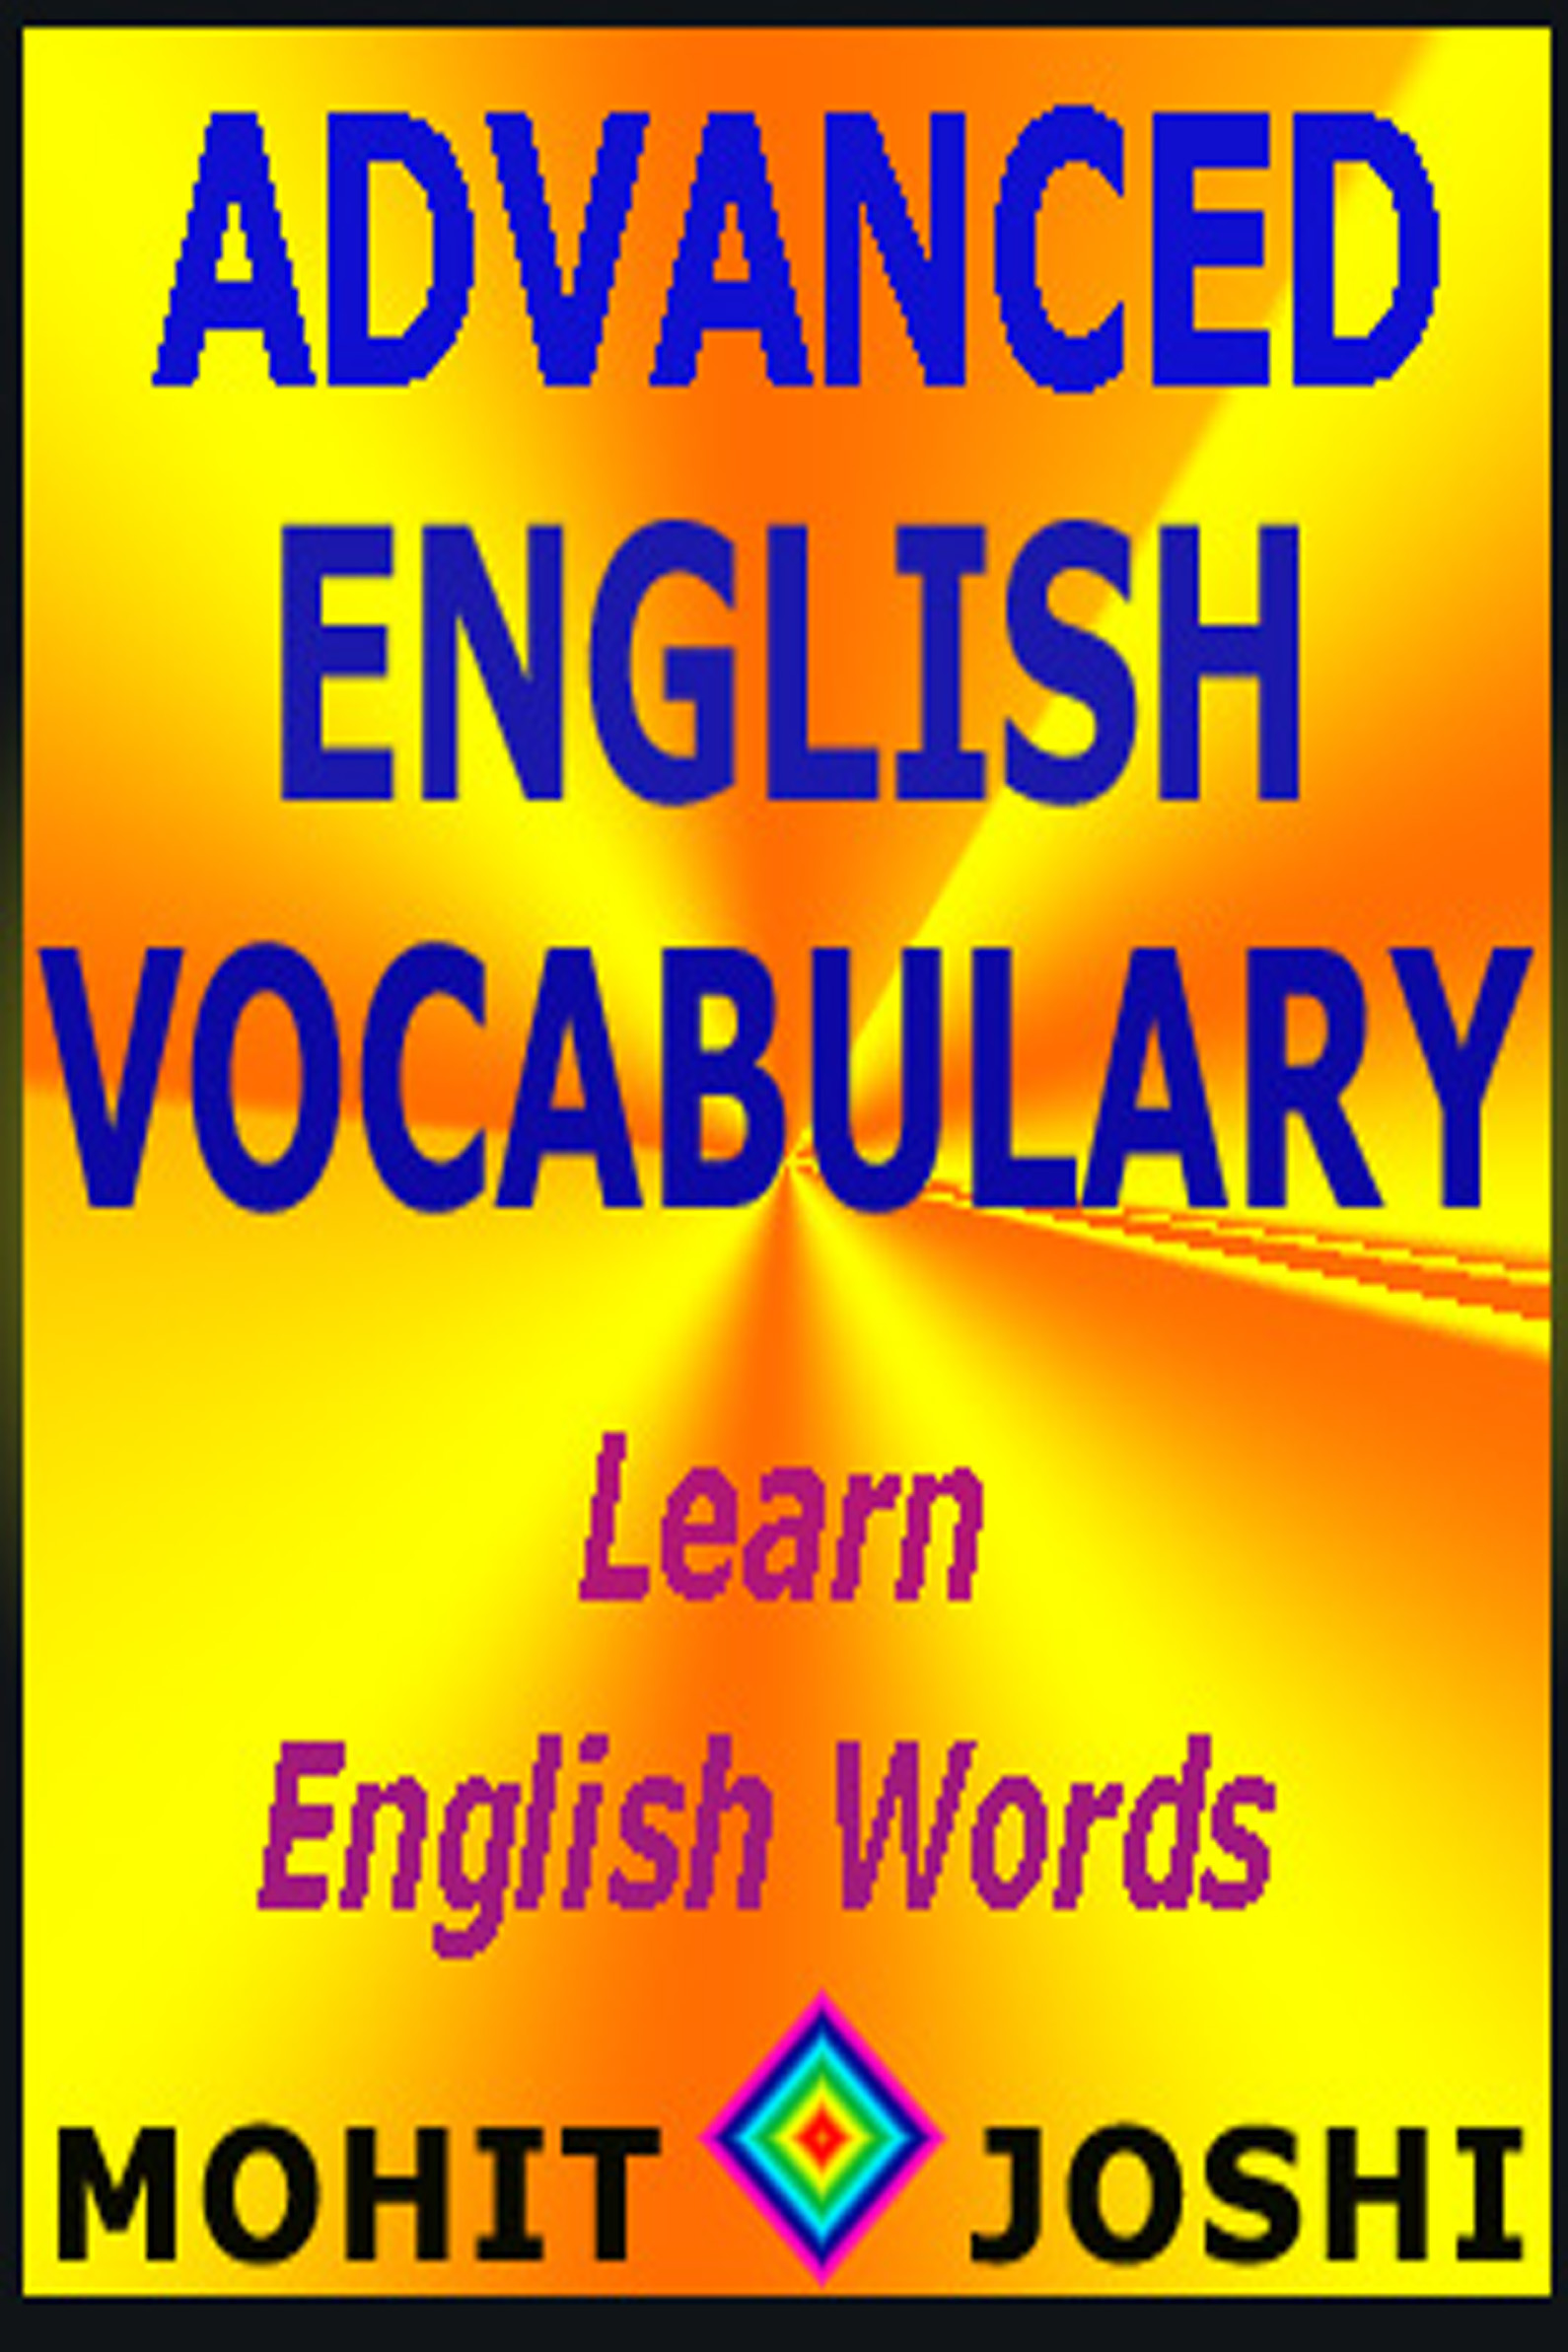 mohitjoshi.com, advanced english vocabulary